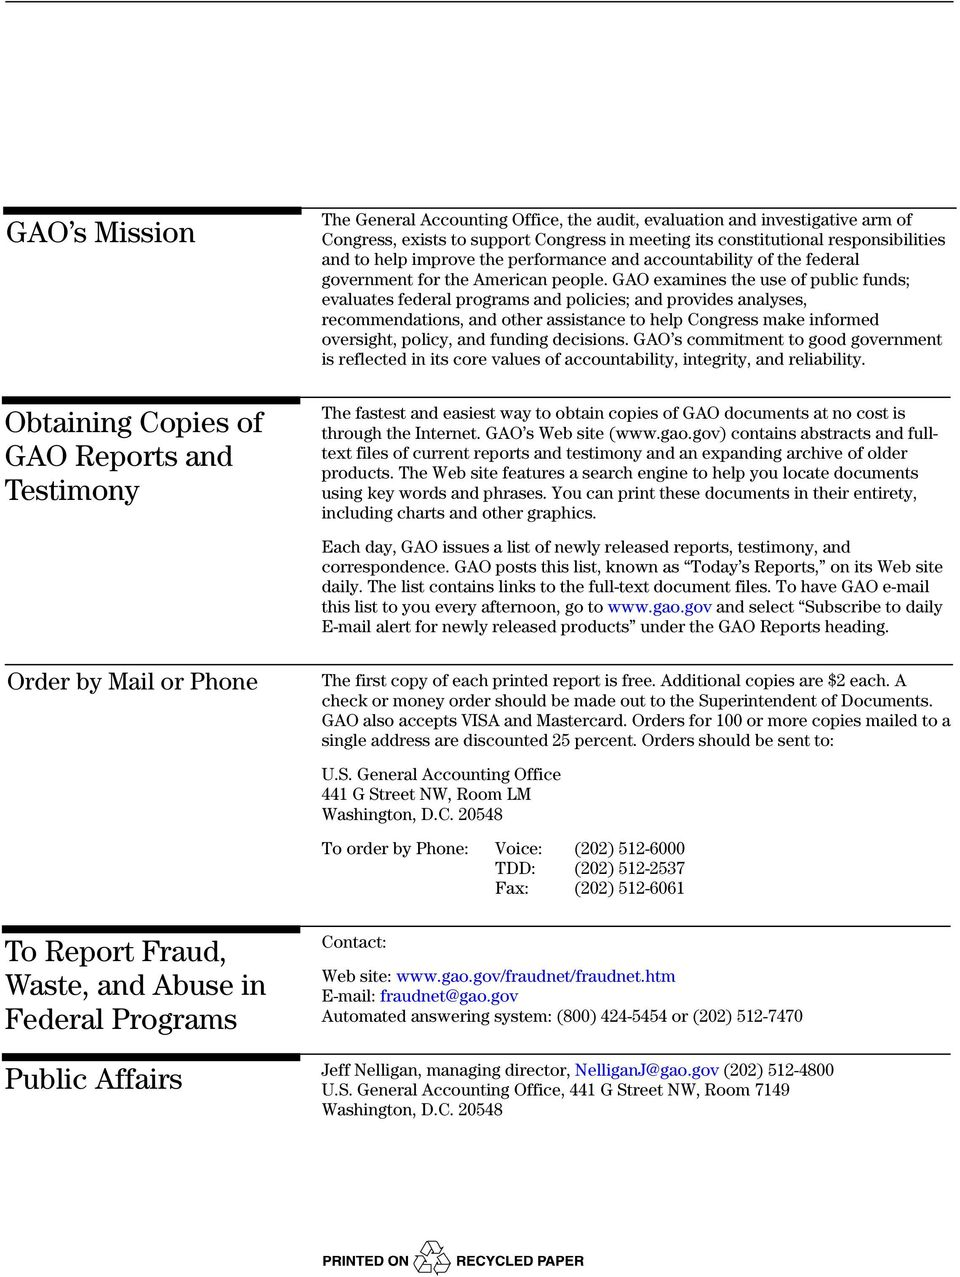 GAO examines the use of public funds; evaluates federal programs and policies; and provides analyses, recommendations, and other assistance to help Congress make informed oversight, policy, and